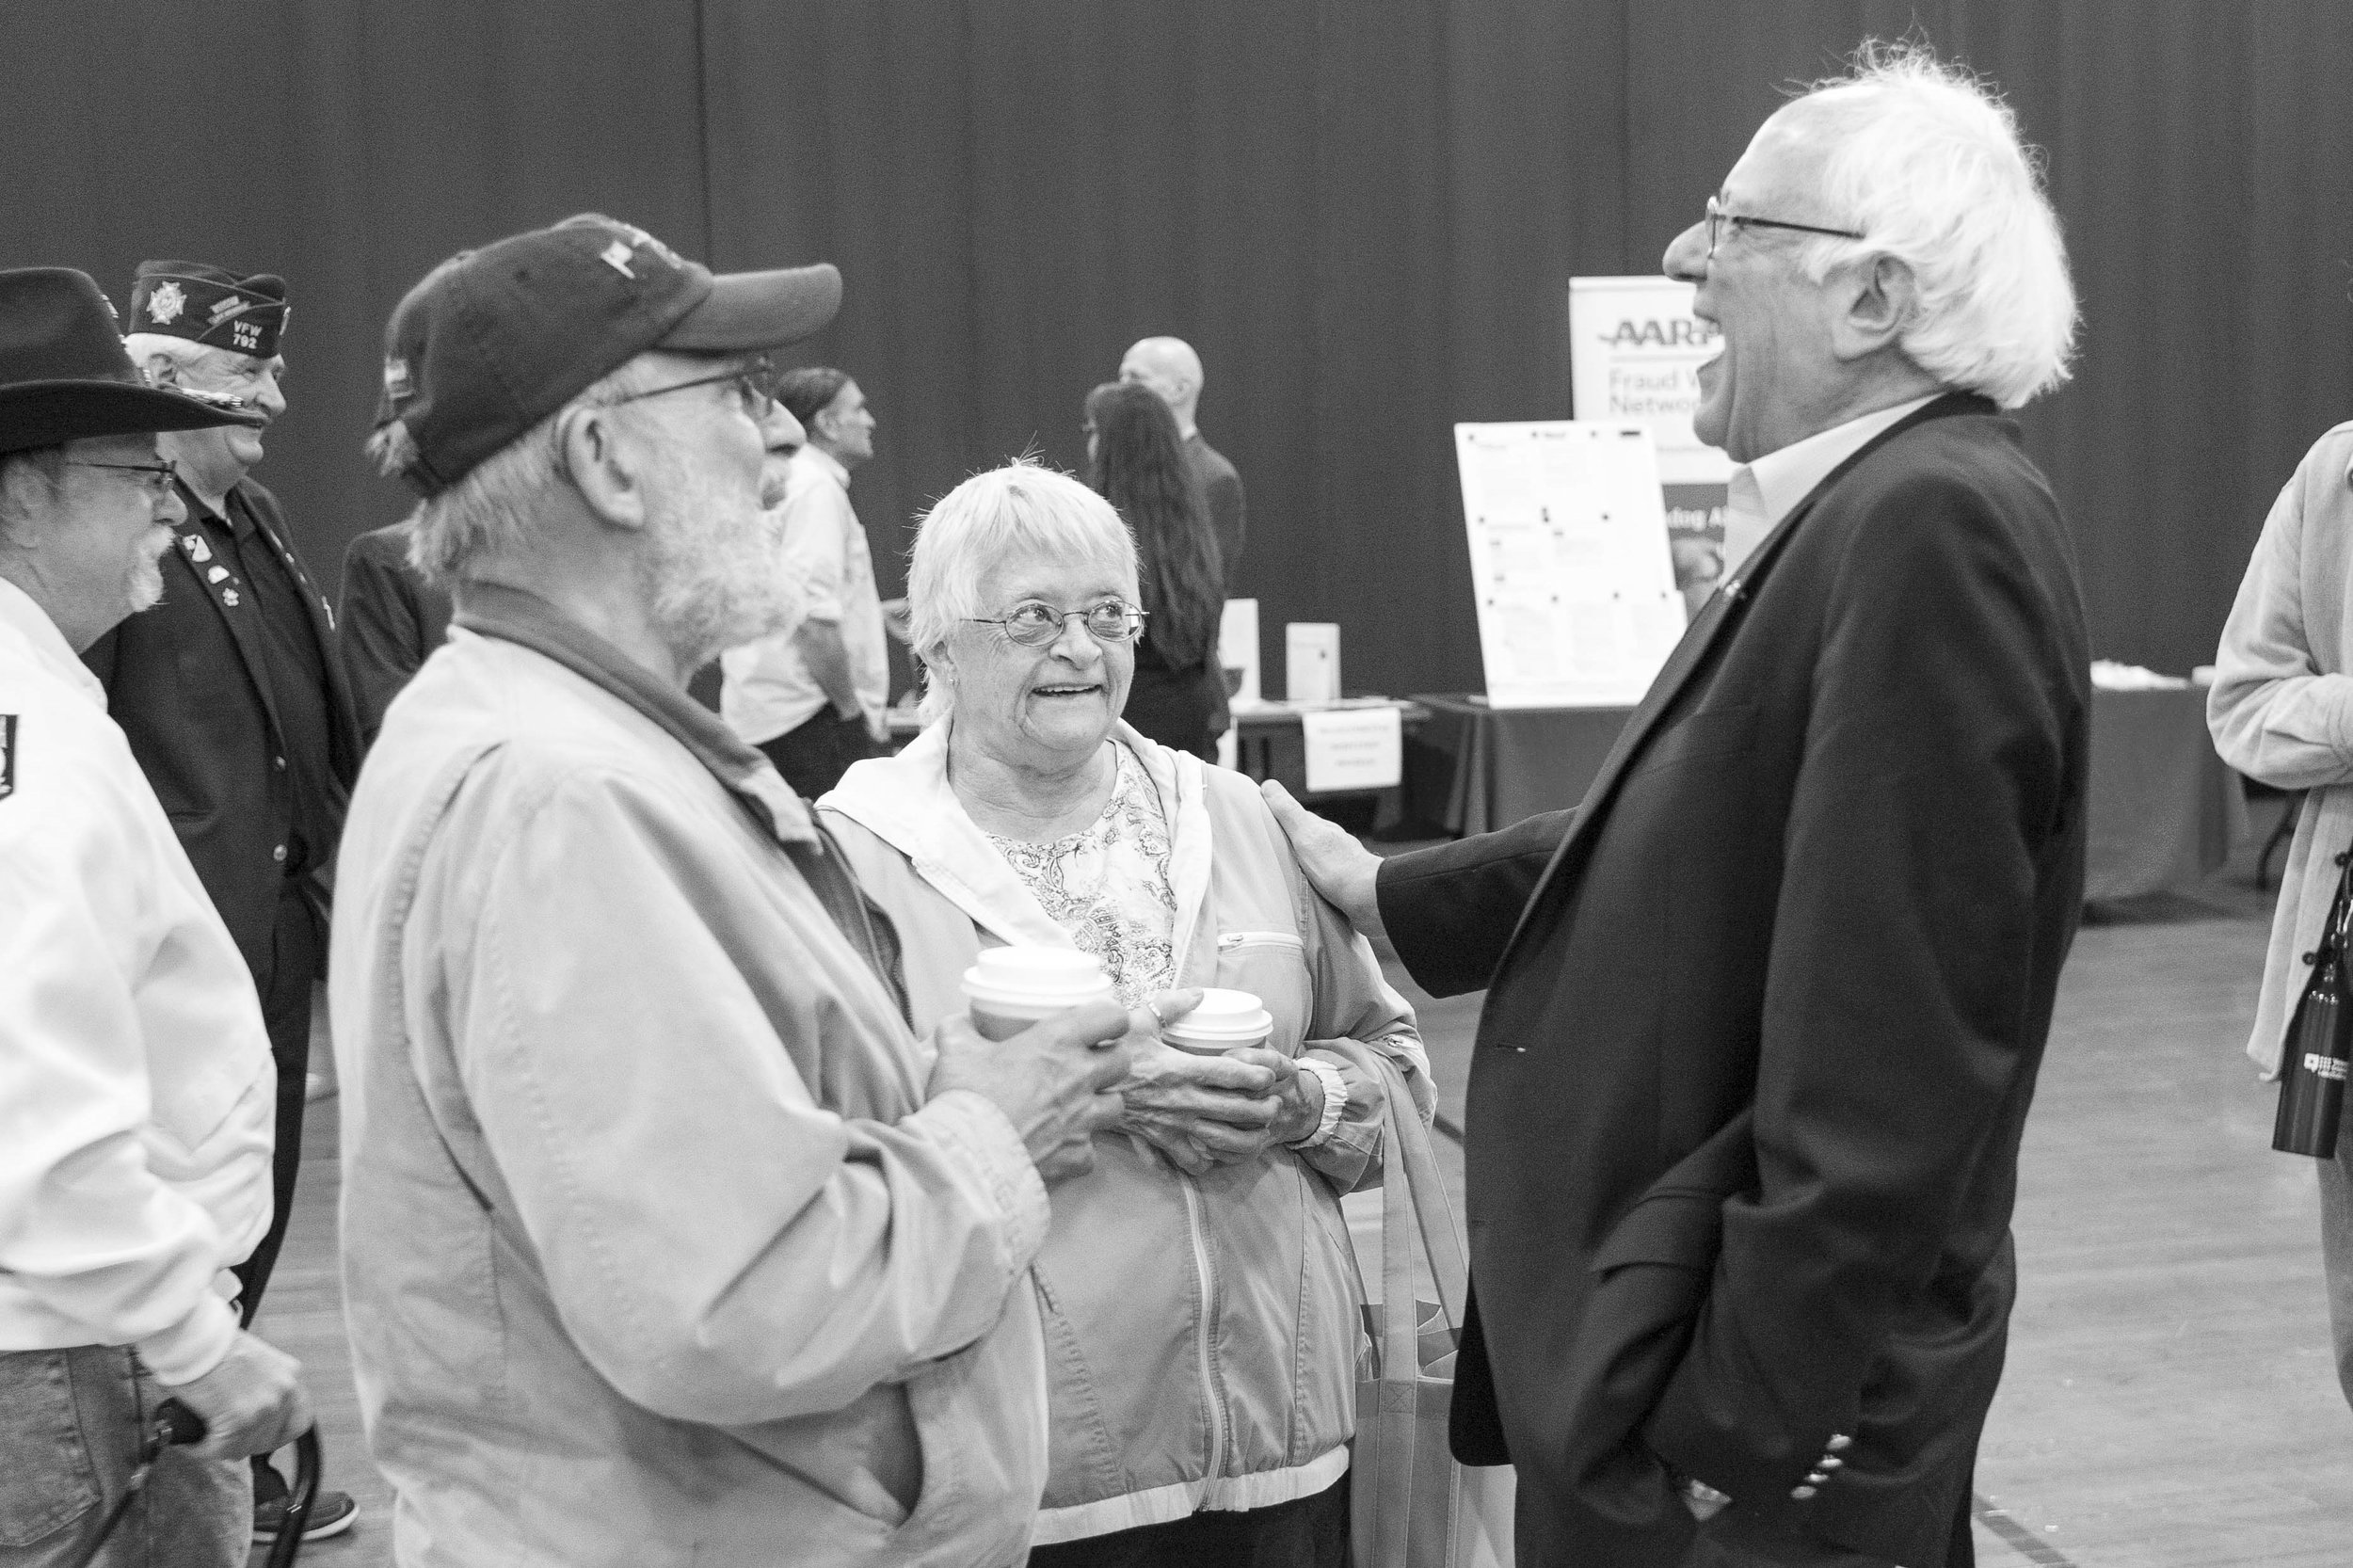 Jim and Jeanne Gricci of Northfield share a laugh with Sen. Bernie Sanders on May 19th, 2018 during a Veterans town hall and resource fair at Norwich University.